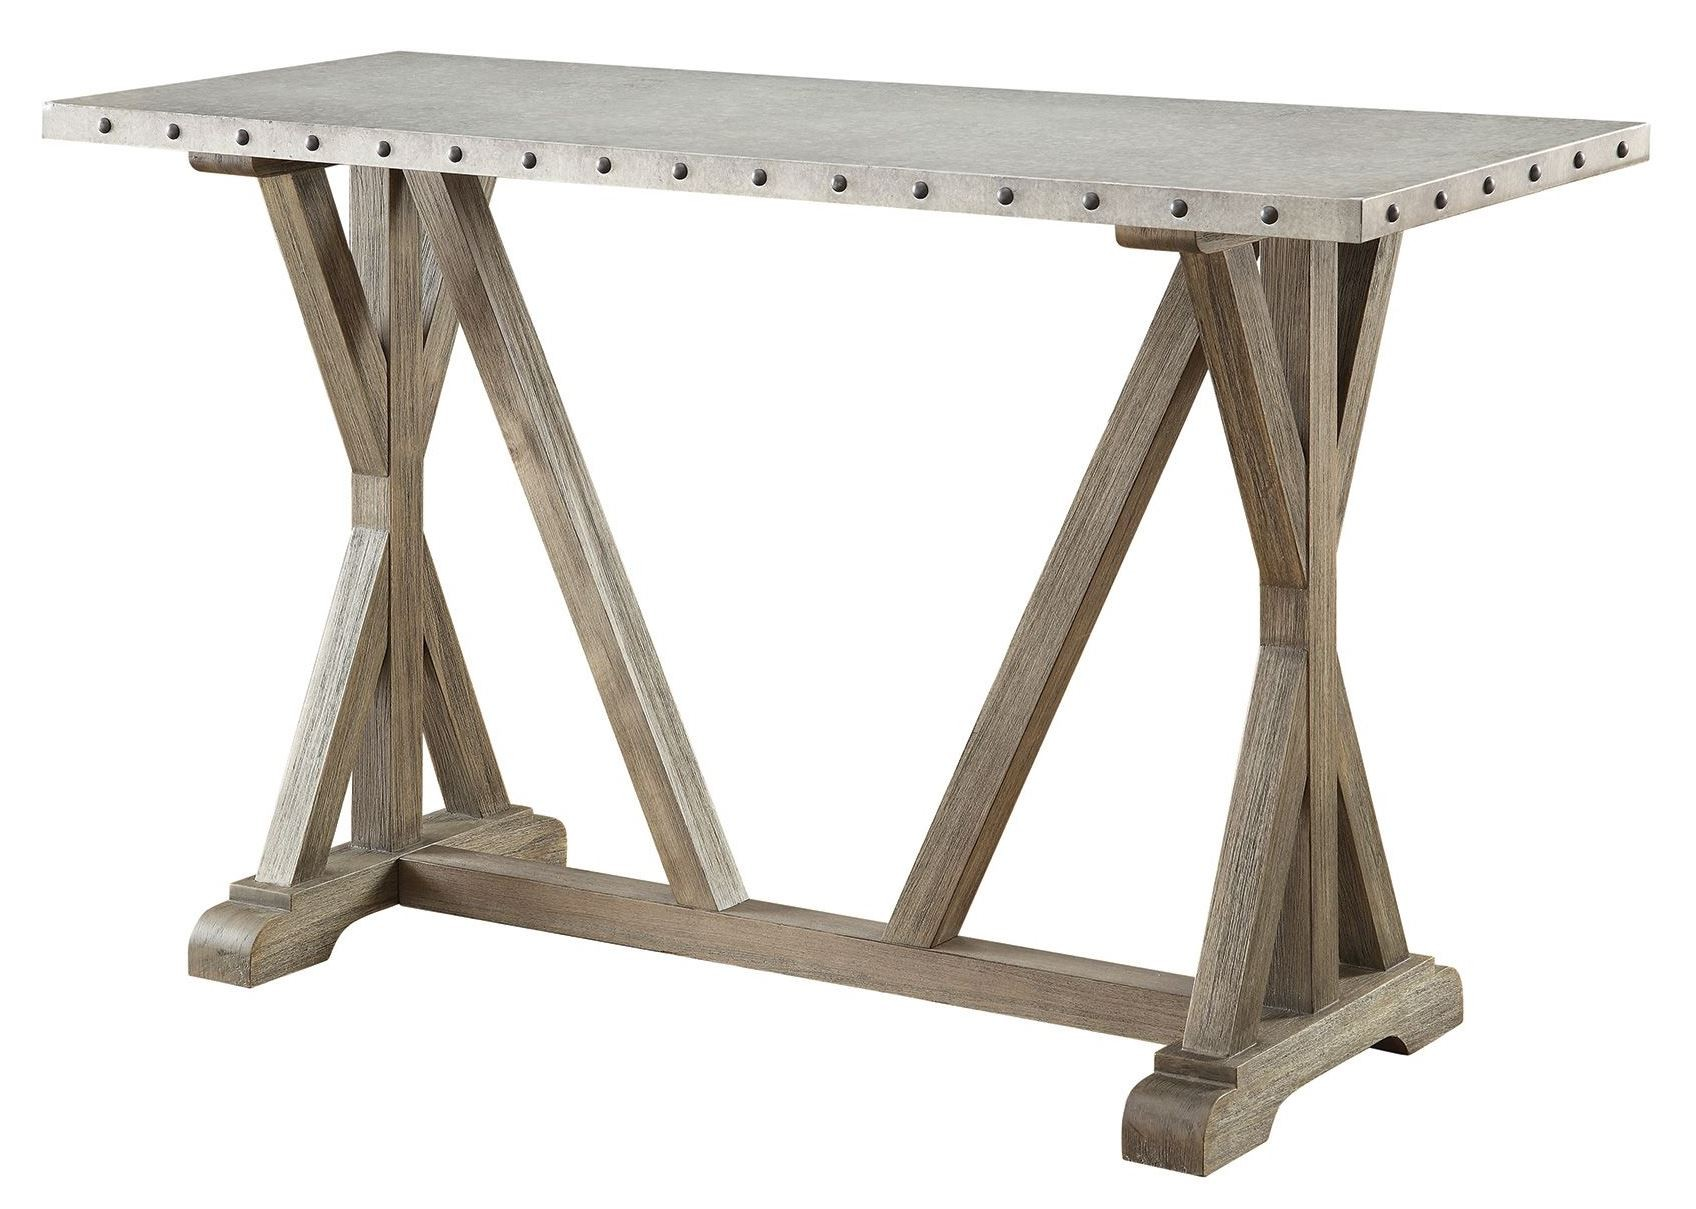 Driftwood sofa table from coaster 703749 coleman furniture for 5 sofa table